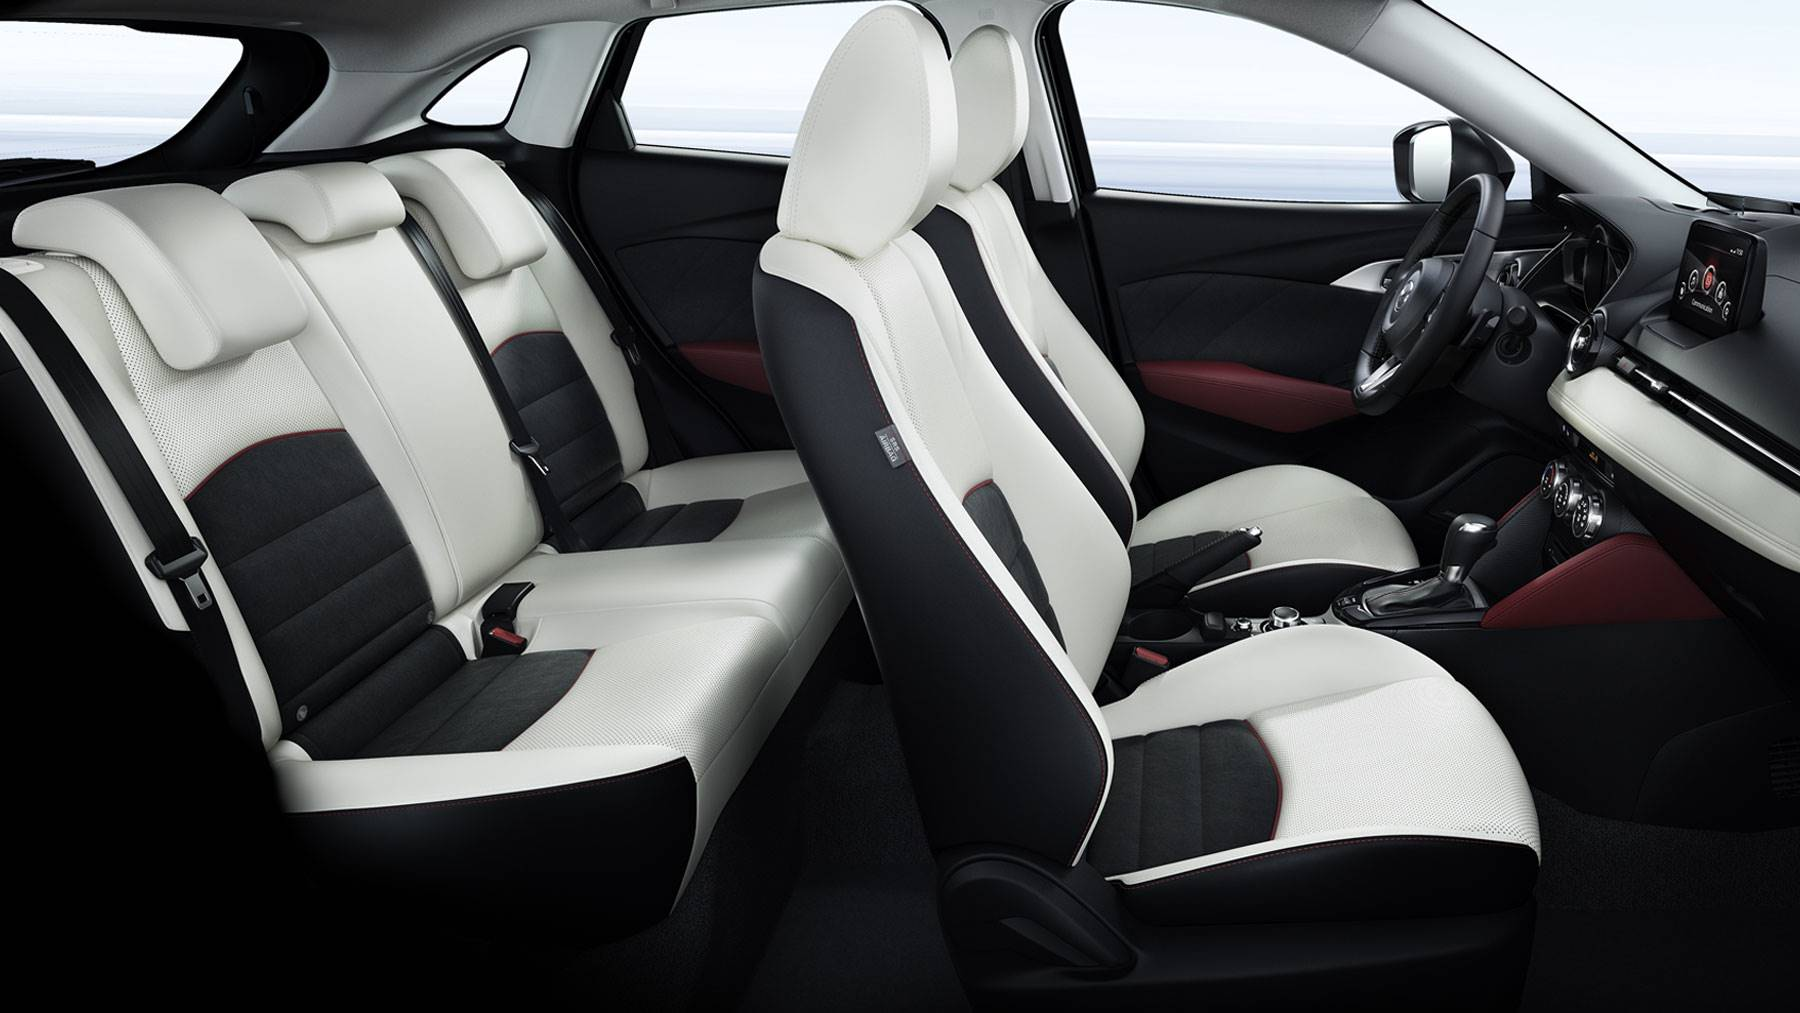 Enjoy Optimum Comfort During Any Drive in the Mazda CX-3!